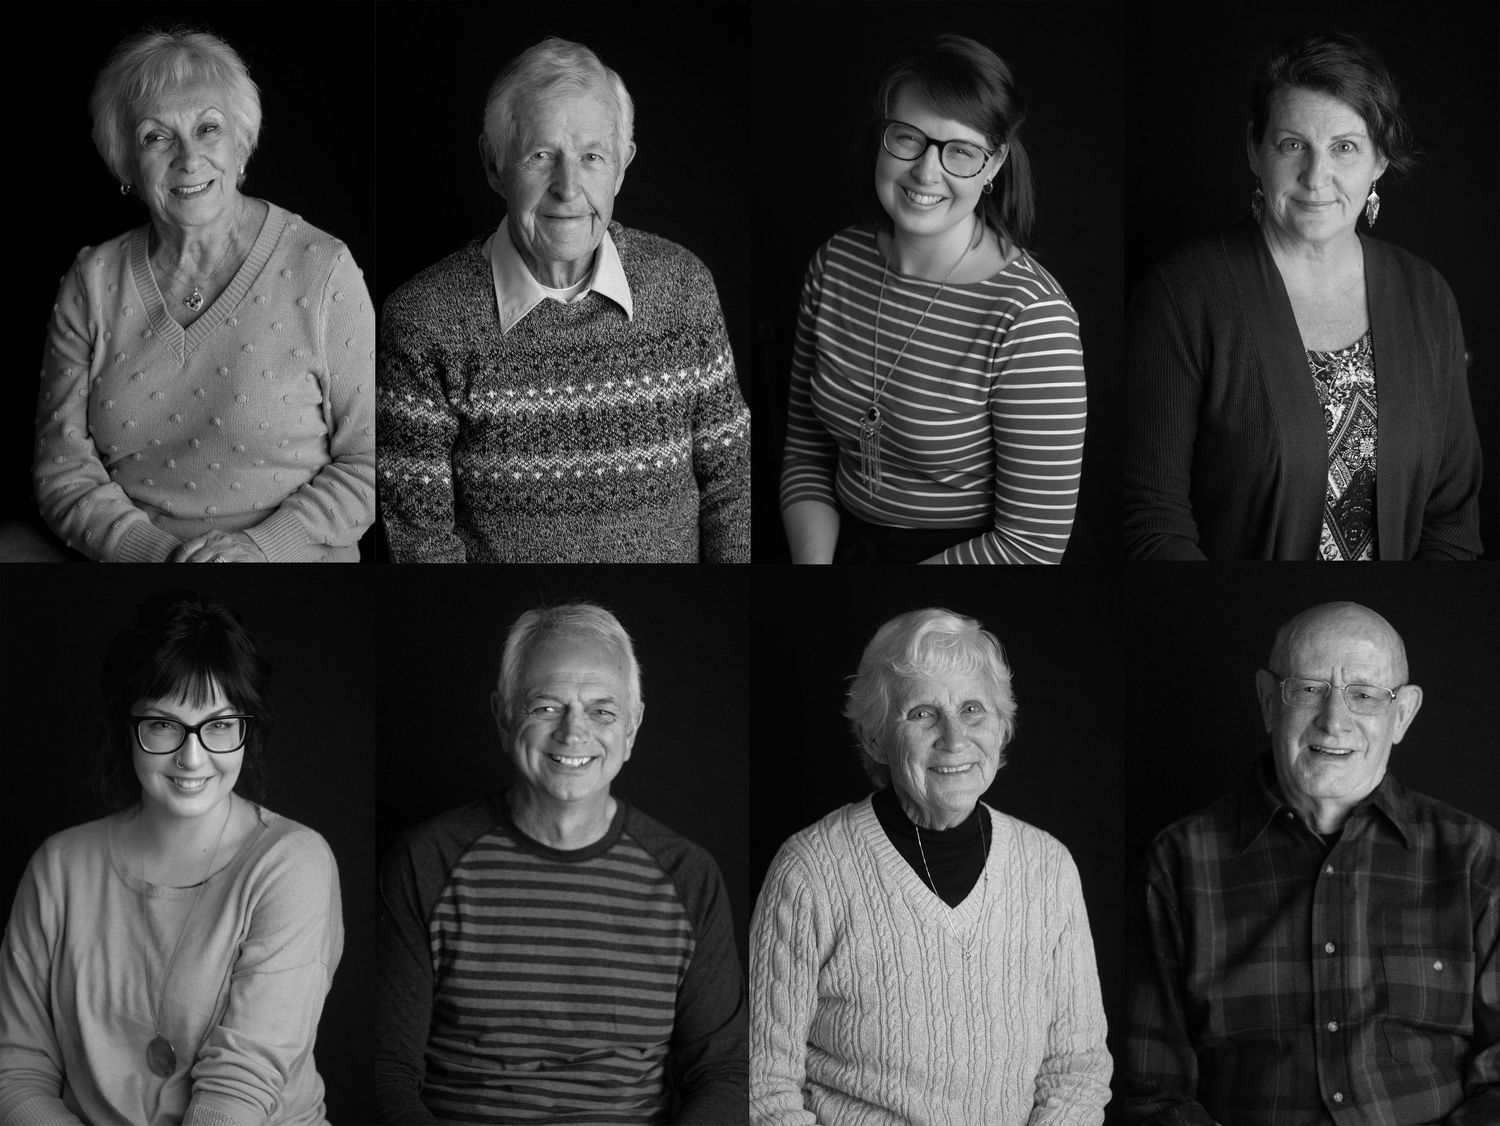 Black and white studio portraits of 8 different family members: children, parents and grandparents